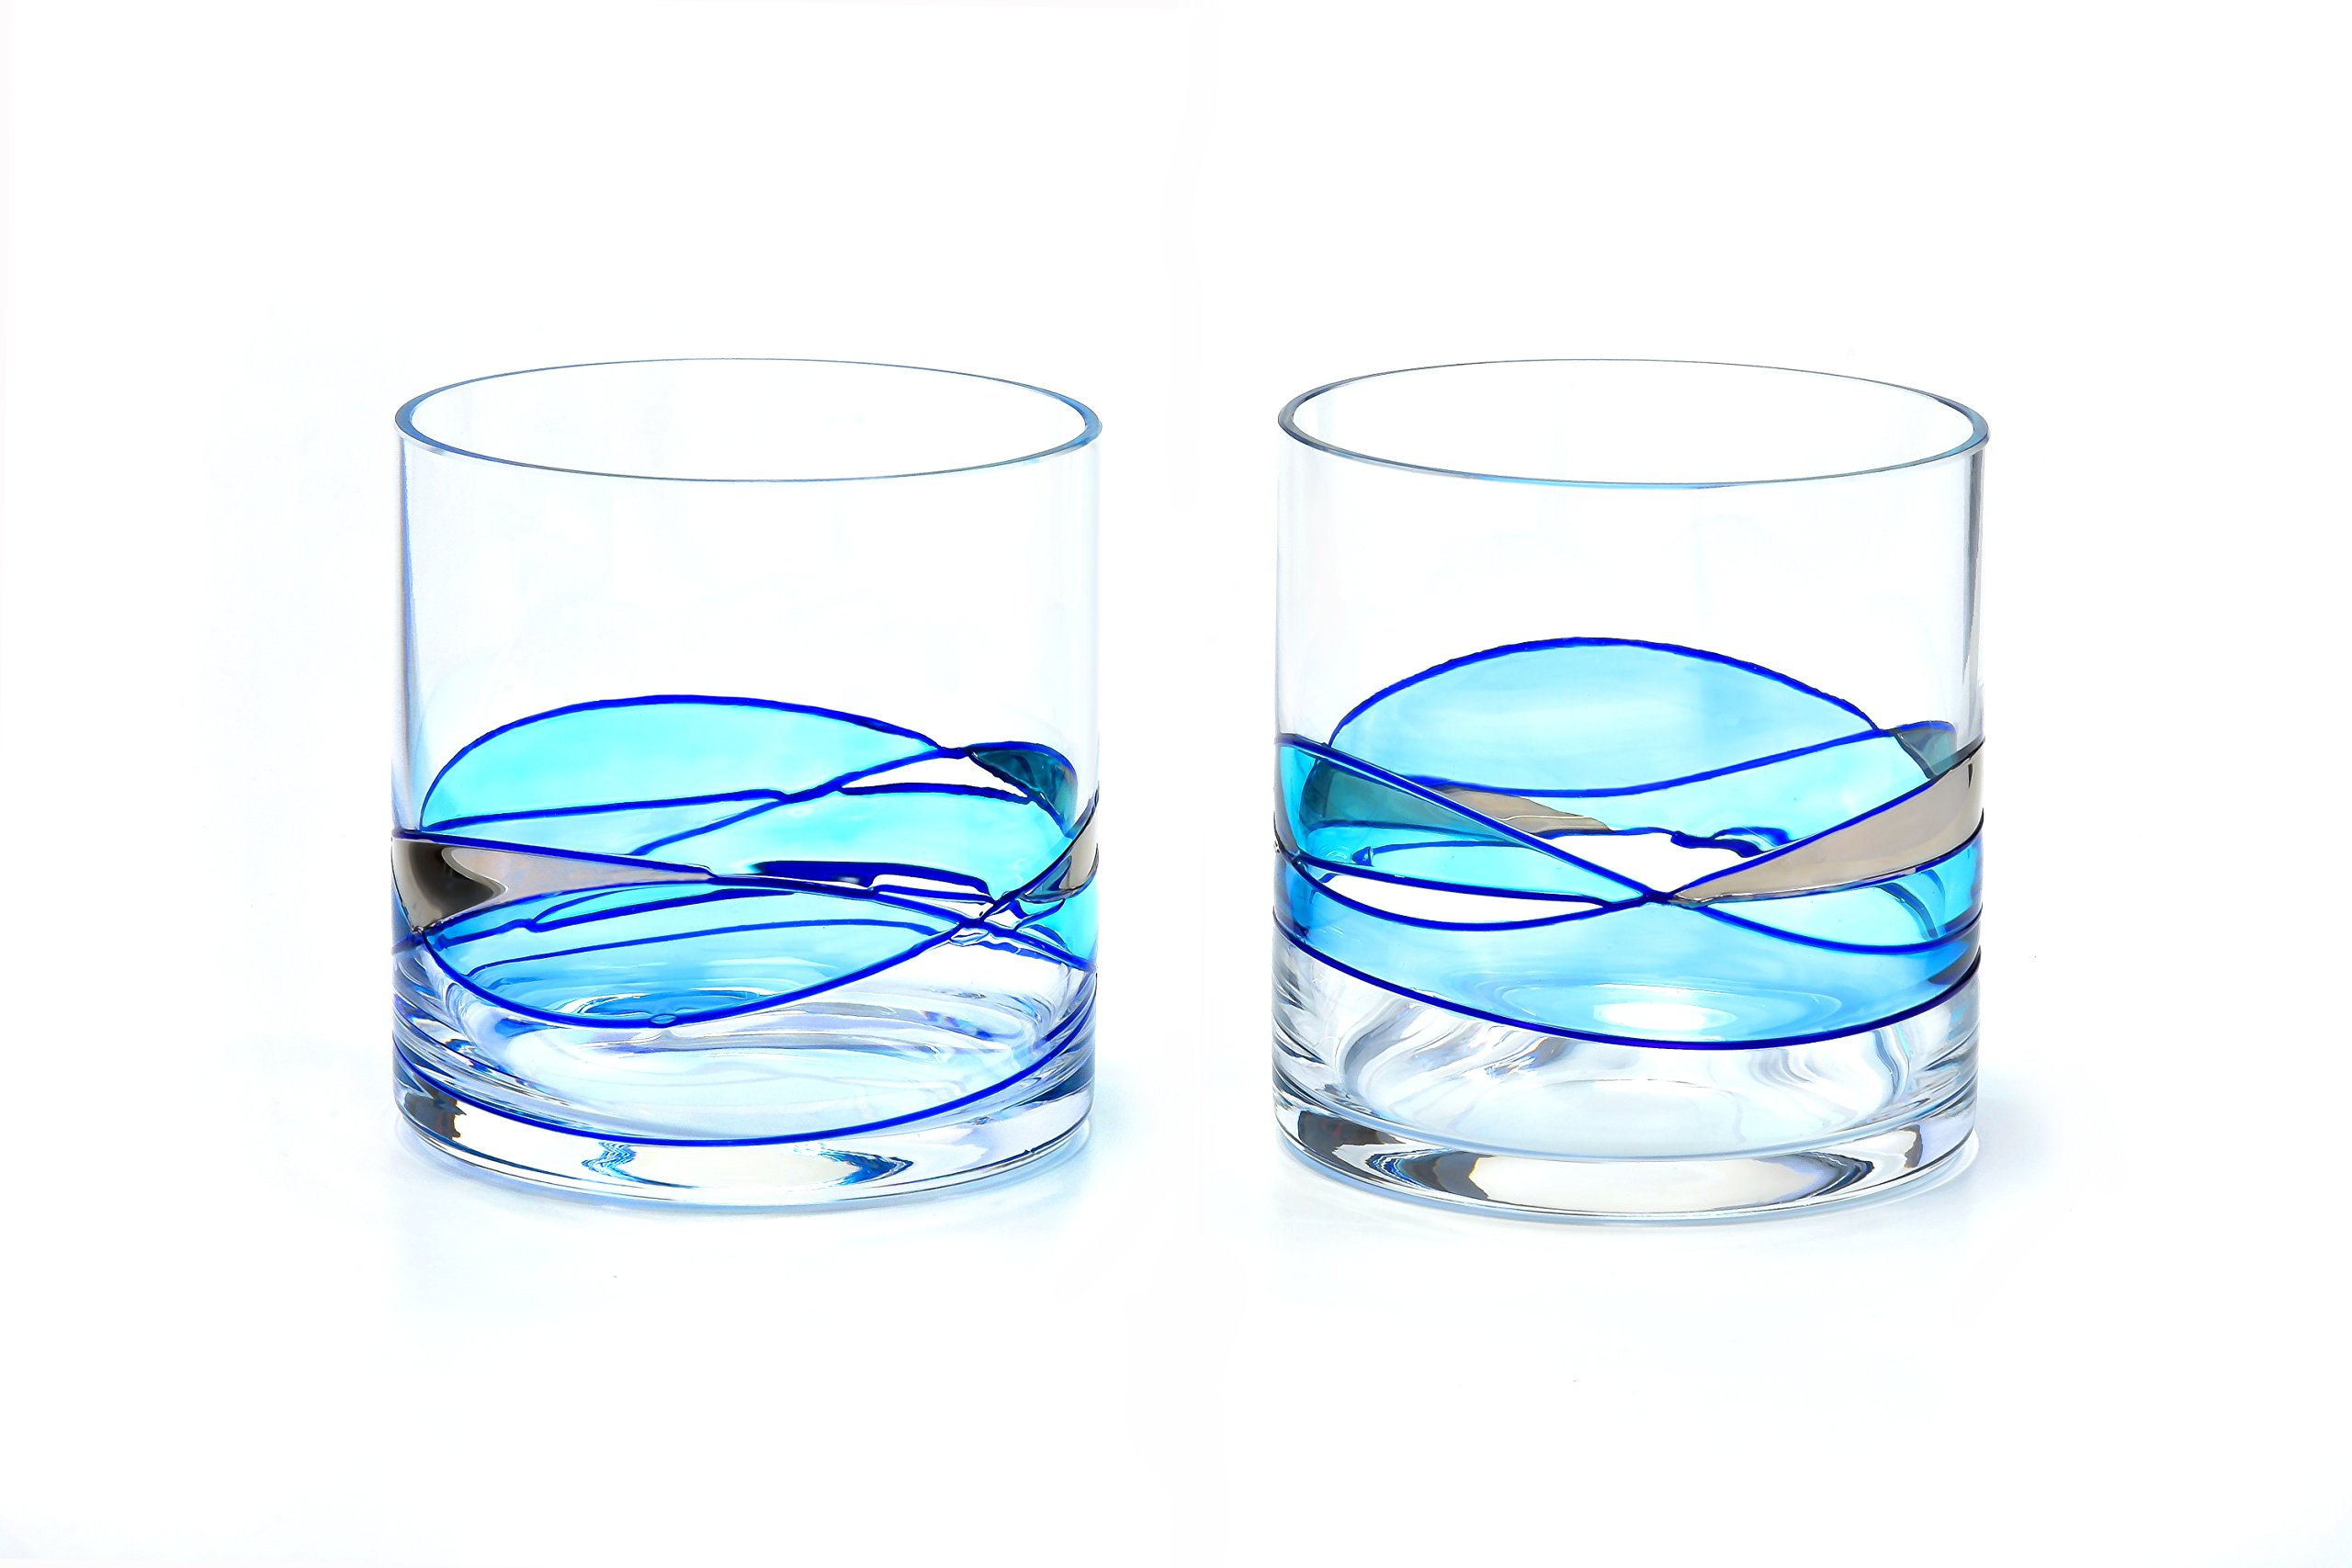 ANTONI BARCELONA Whiskey Glass 12oz - Unique Lowball Glass, Drinking Glasses, Old Fashioned, Bourbon, Scotch&Rocks Glass – Unique Gifts Set For Men, Women, Dad, Him, Groom (BLUE, 2)